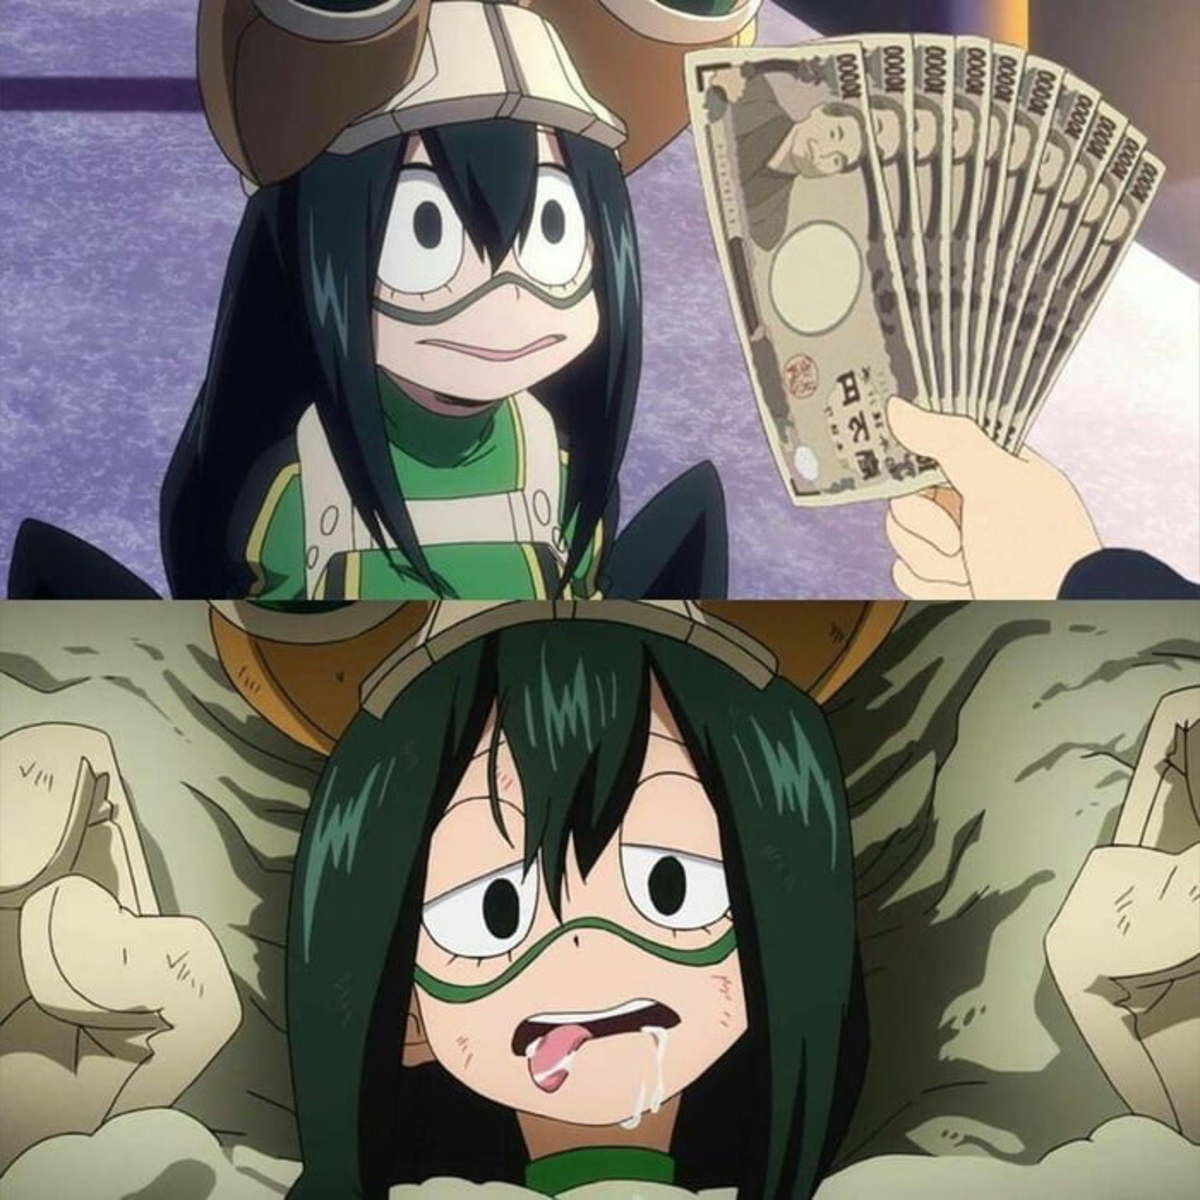 Tsuyu-chan Finds A Side Job. .. no lewding the frog.